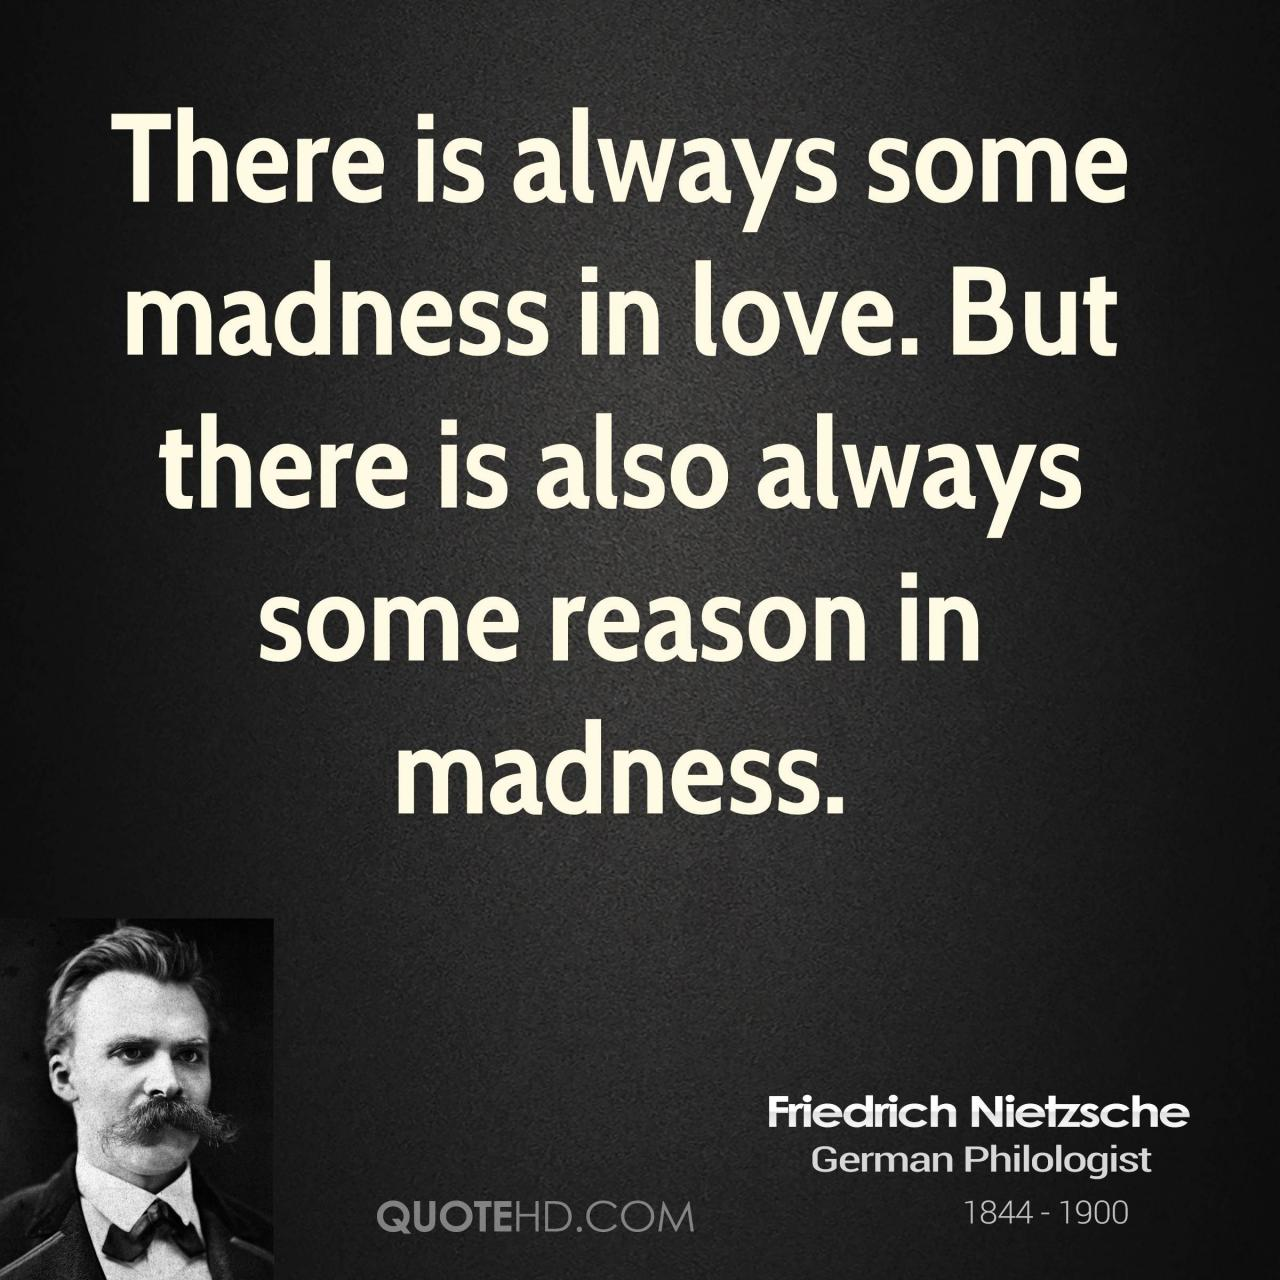 Friedrich Nietzsche Quotes Whoever Fights Monsters Should See To It That In The Process He Does Not Become A Monster